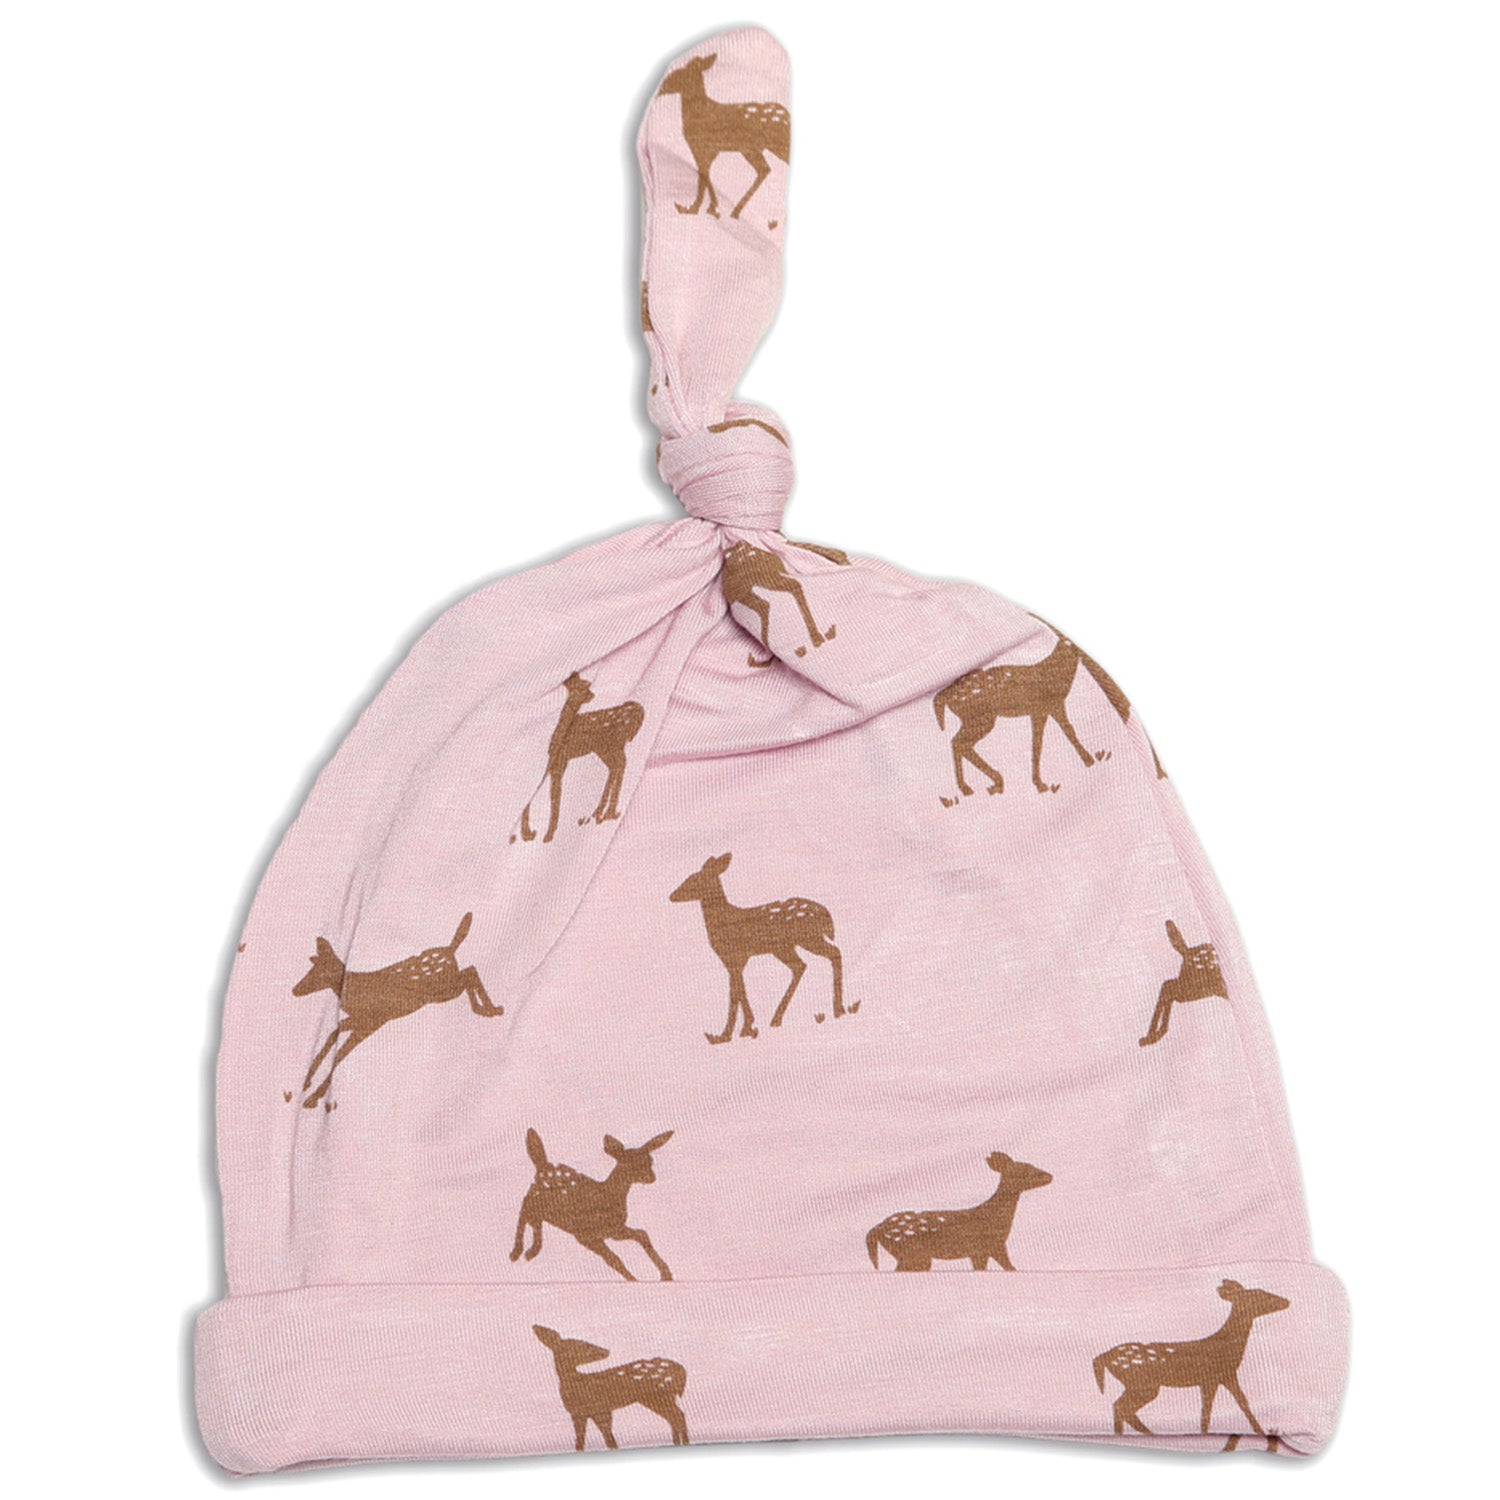 Silkberry Baby Bamboo Knot Hat - Autumn Deer